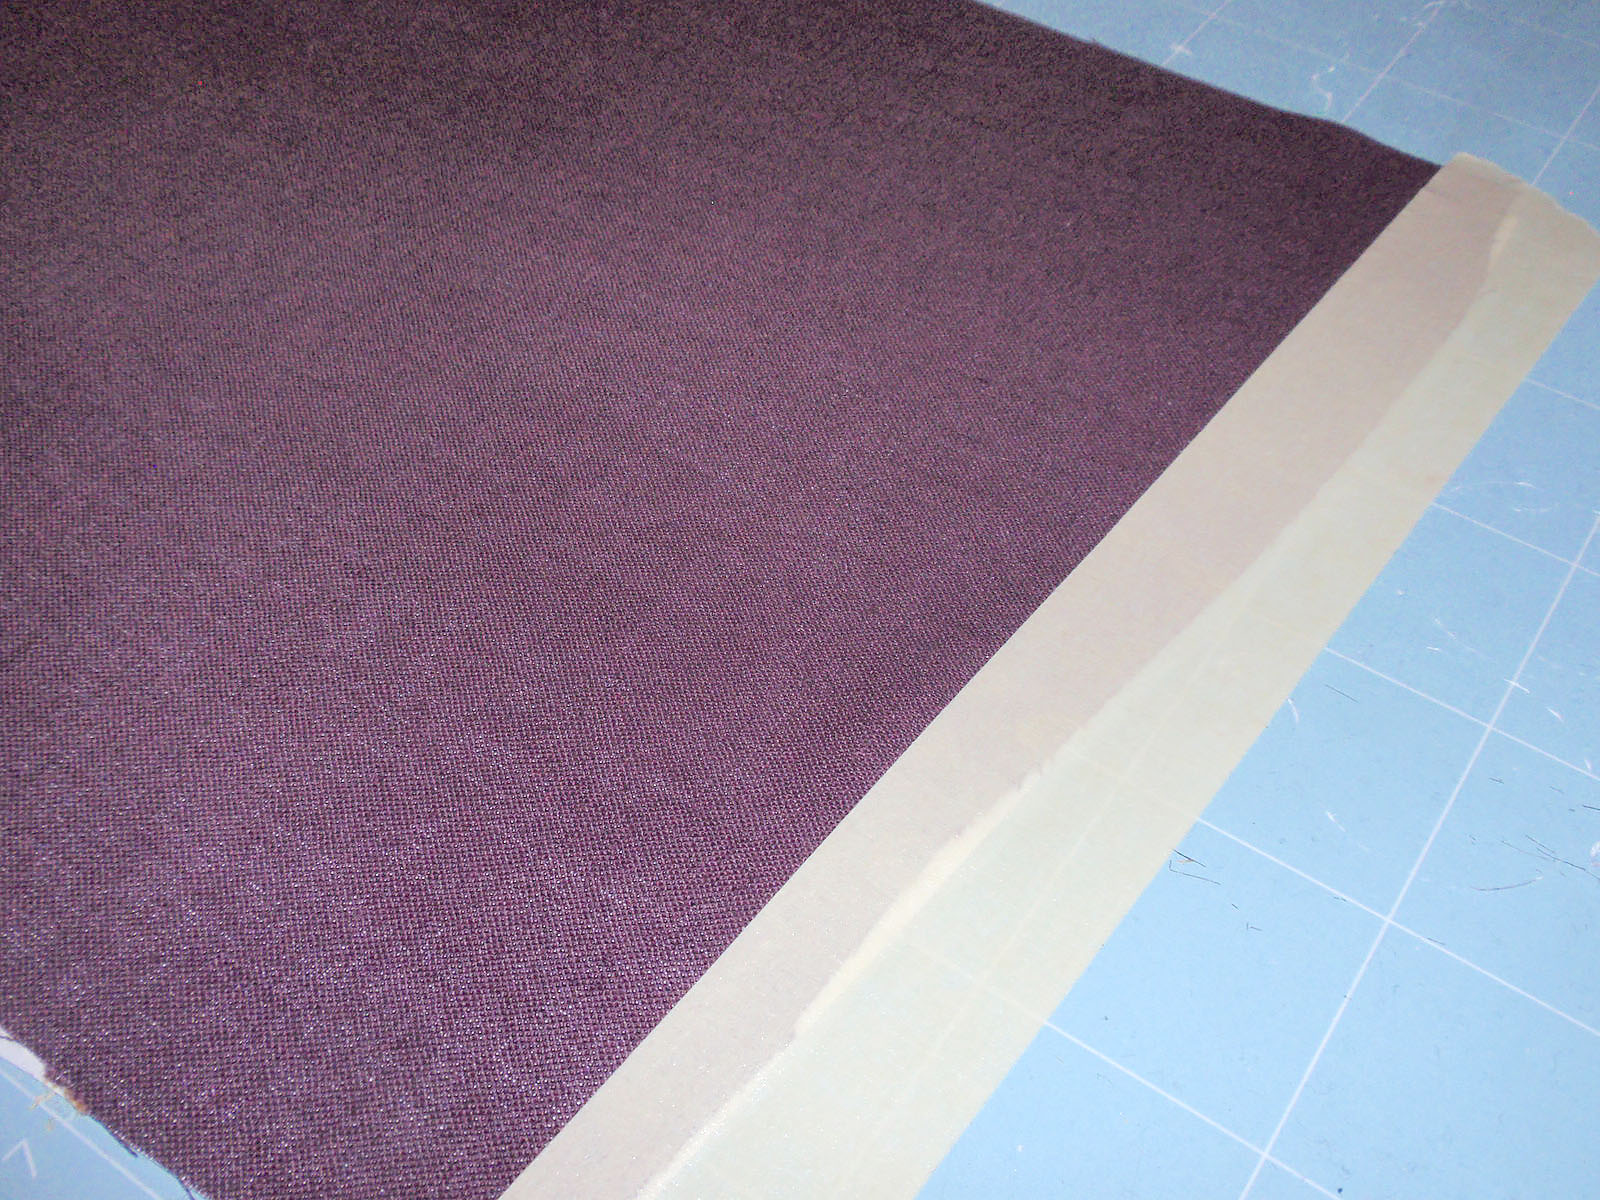 tape fabric to mat